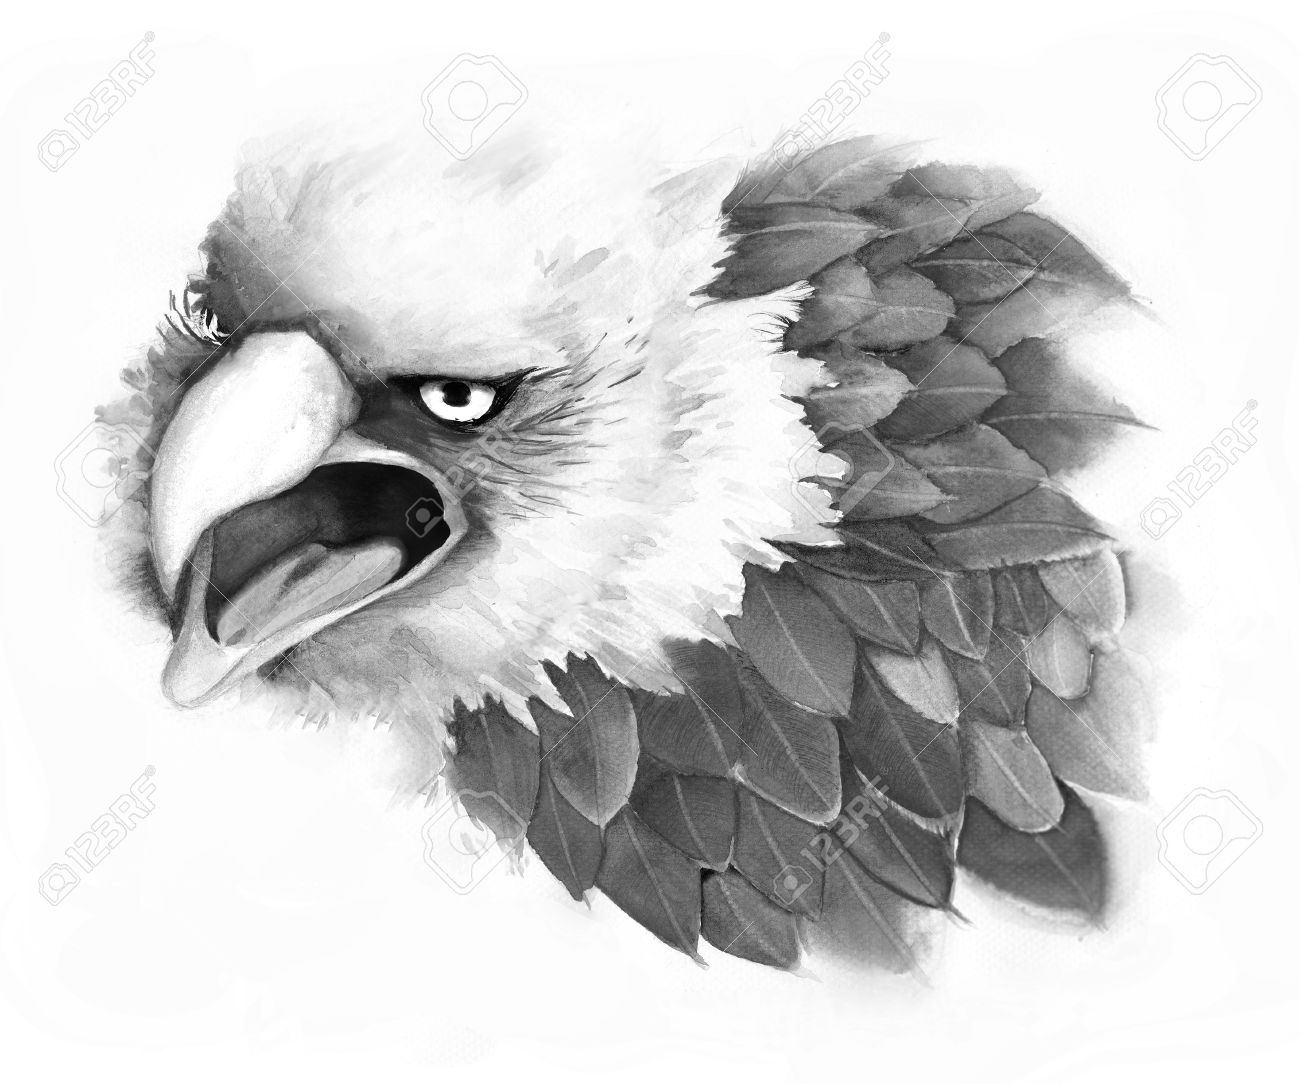 An illustration of fantasy eagle done by pencil sketch stock illustration 28771901